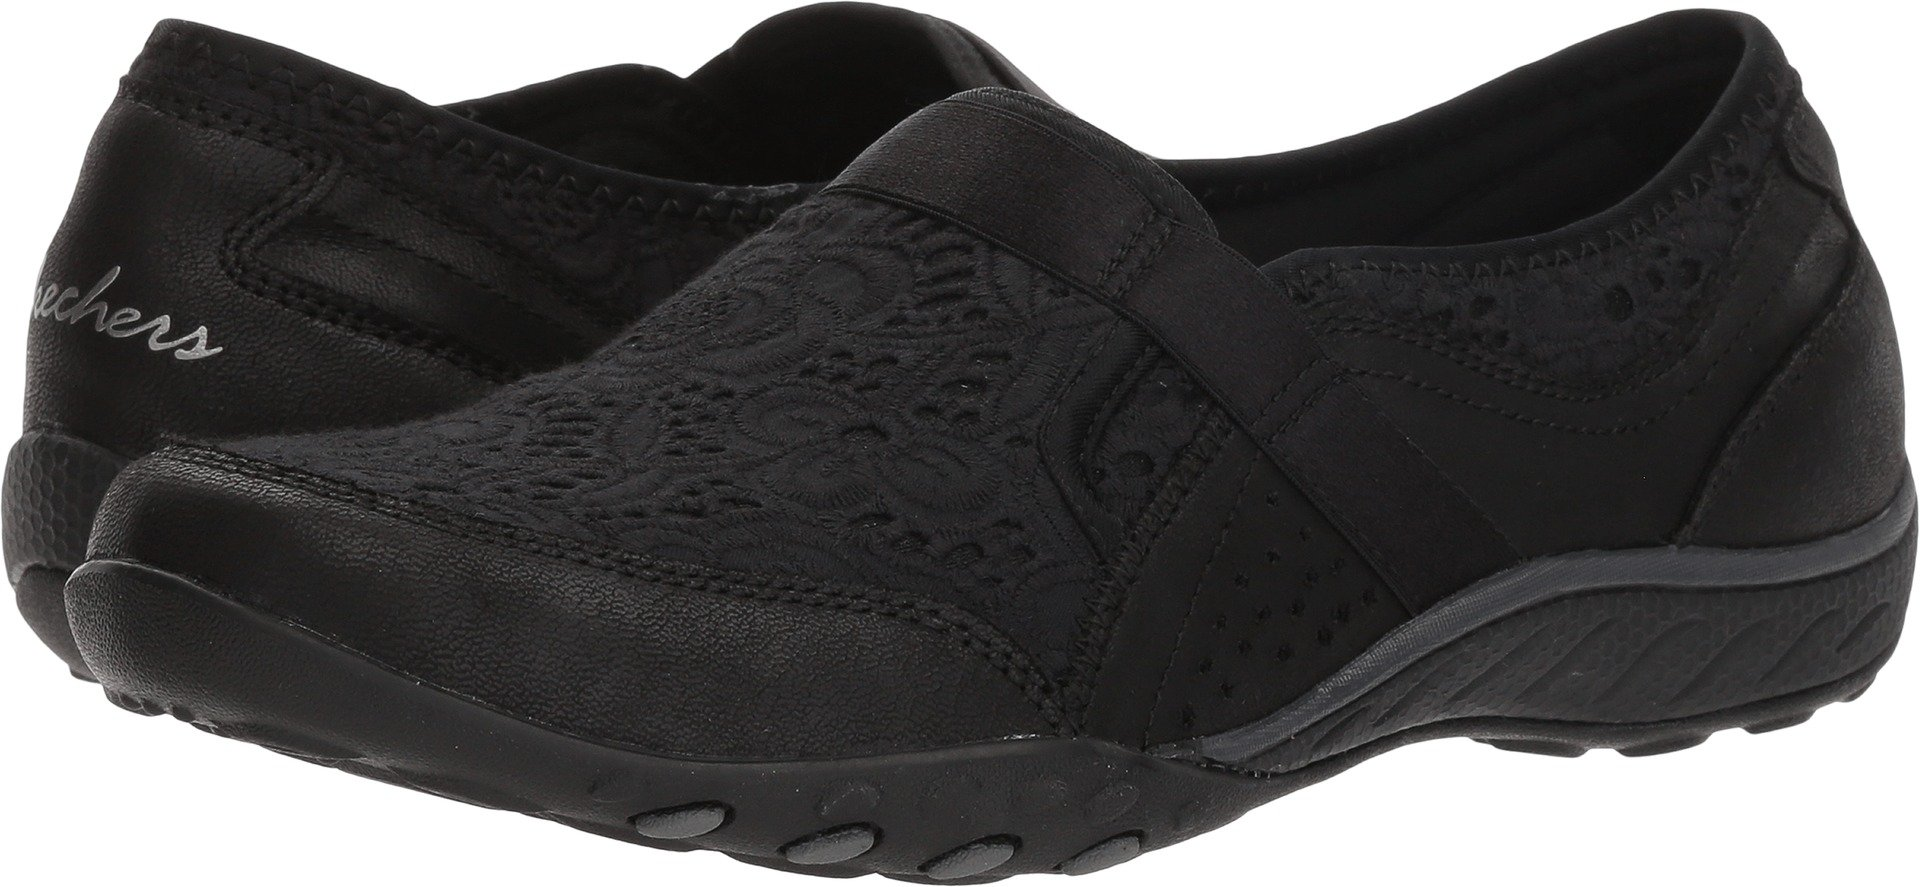 Skechers Relaxed Fit Breathe Easy Thankful Womens Slip On Sneakers Black 8